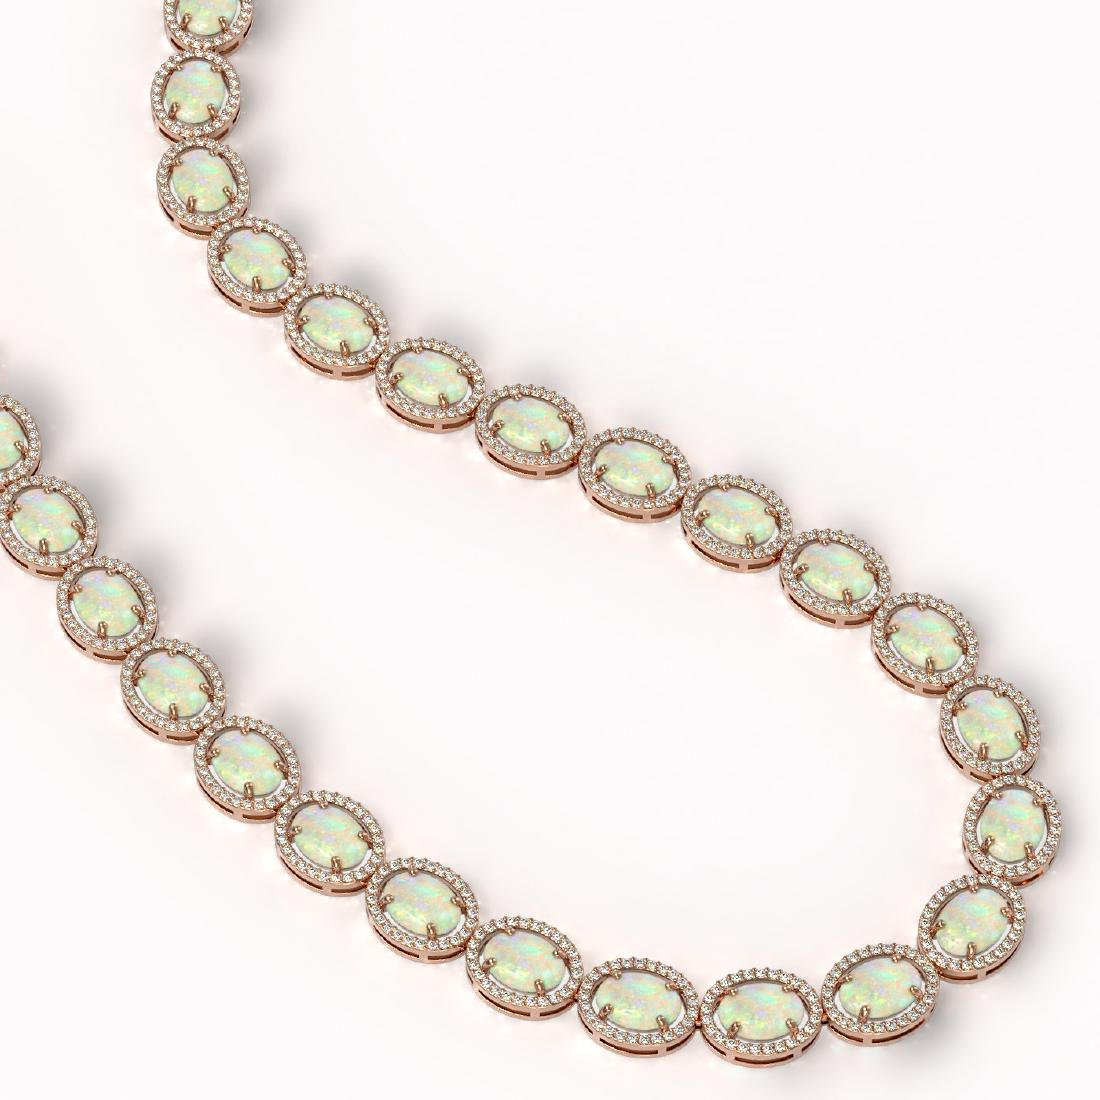 42.29 CTW Opal & Diamond Halo Necklace 10K Rose Gold - 2